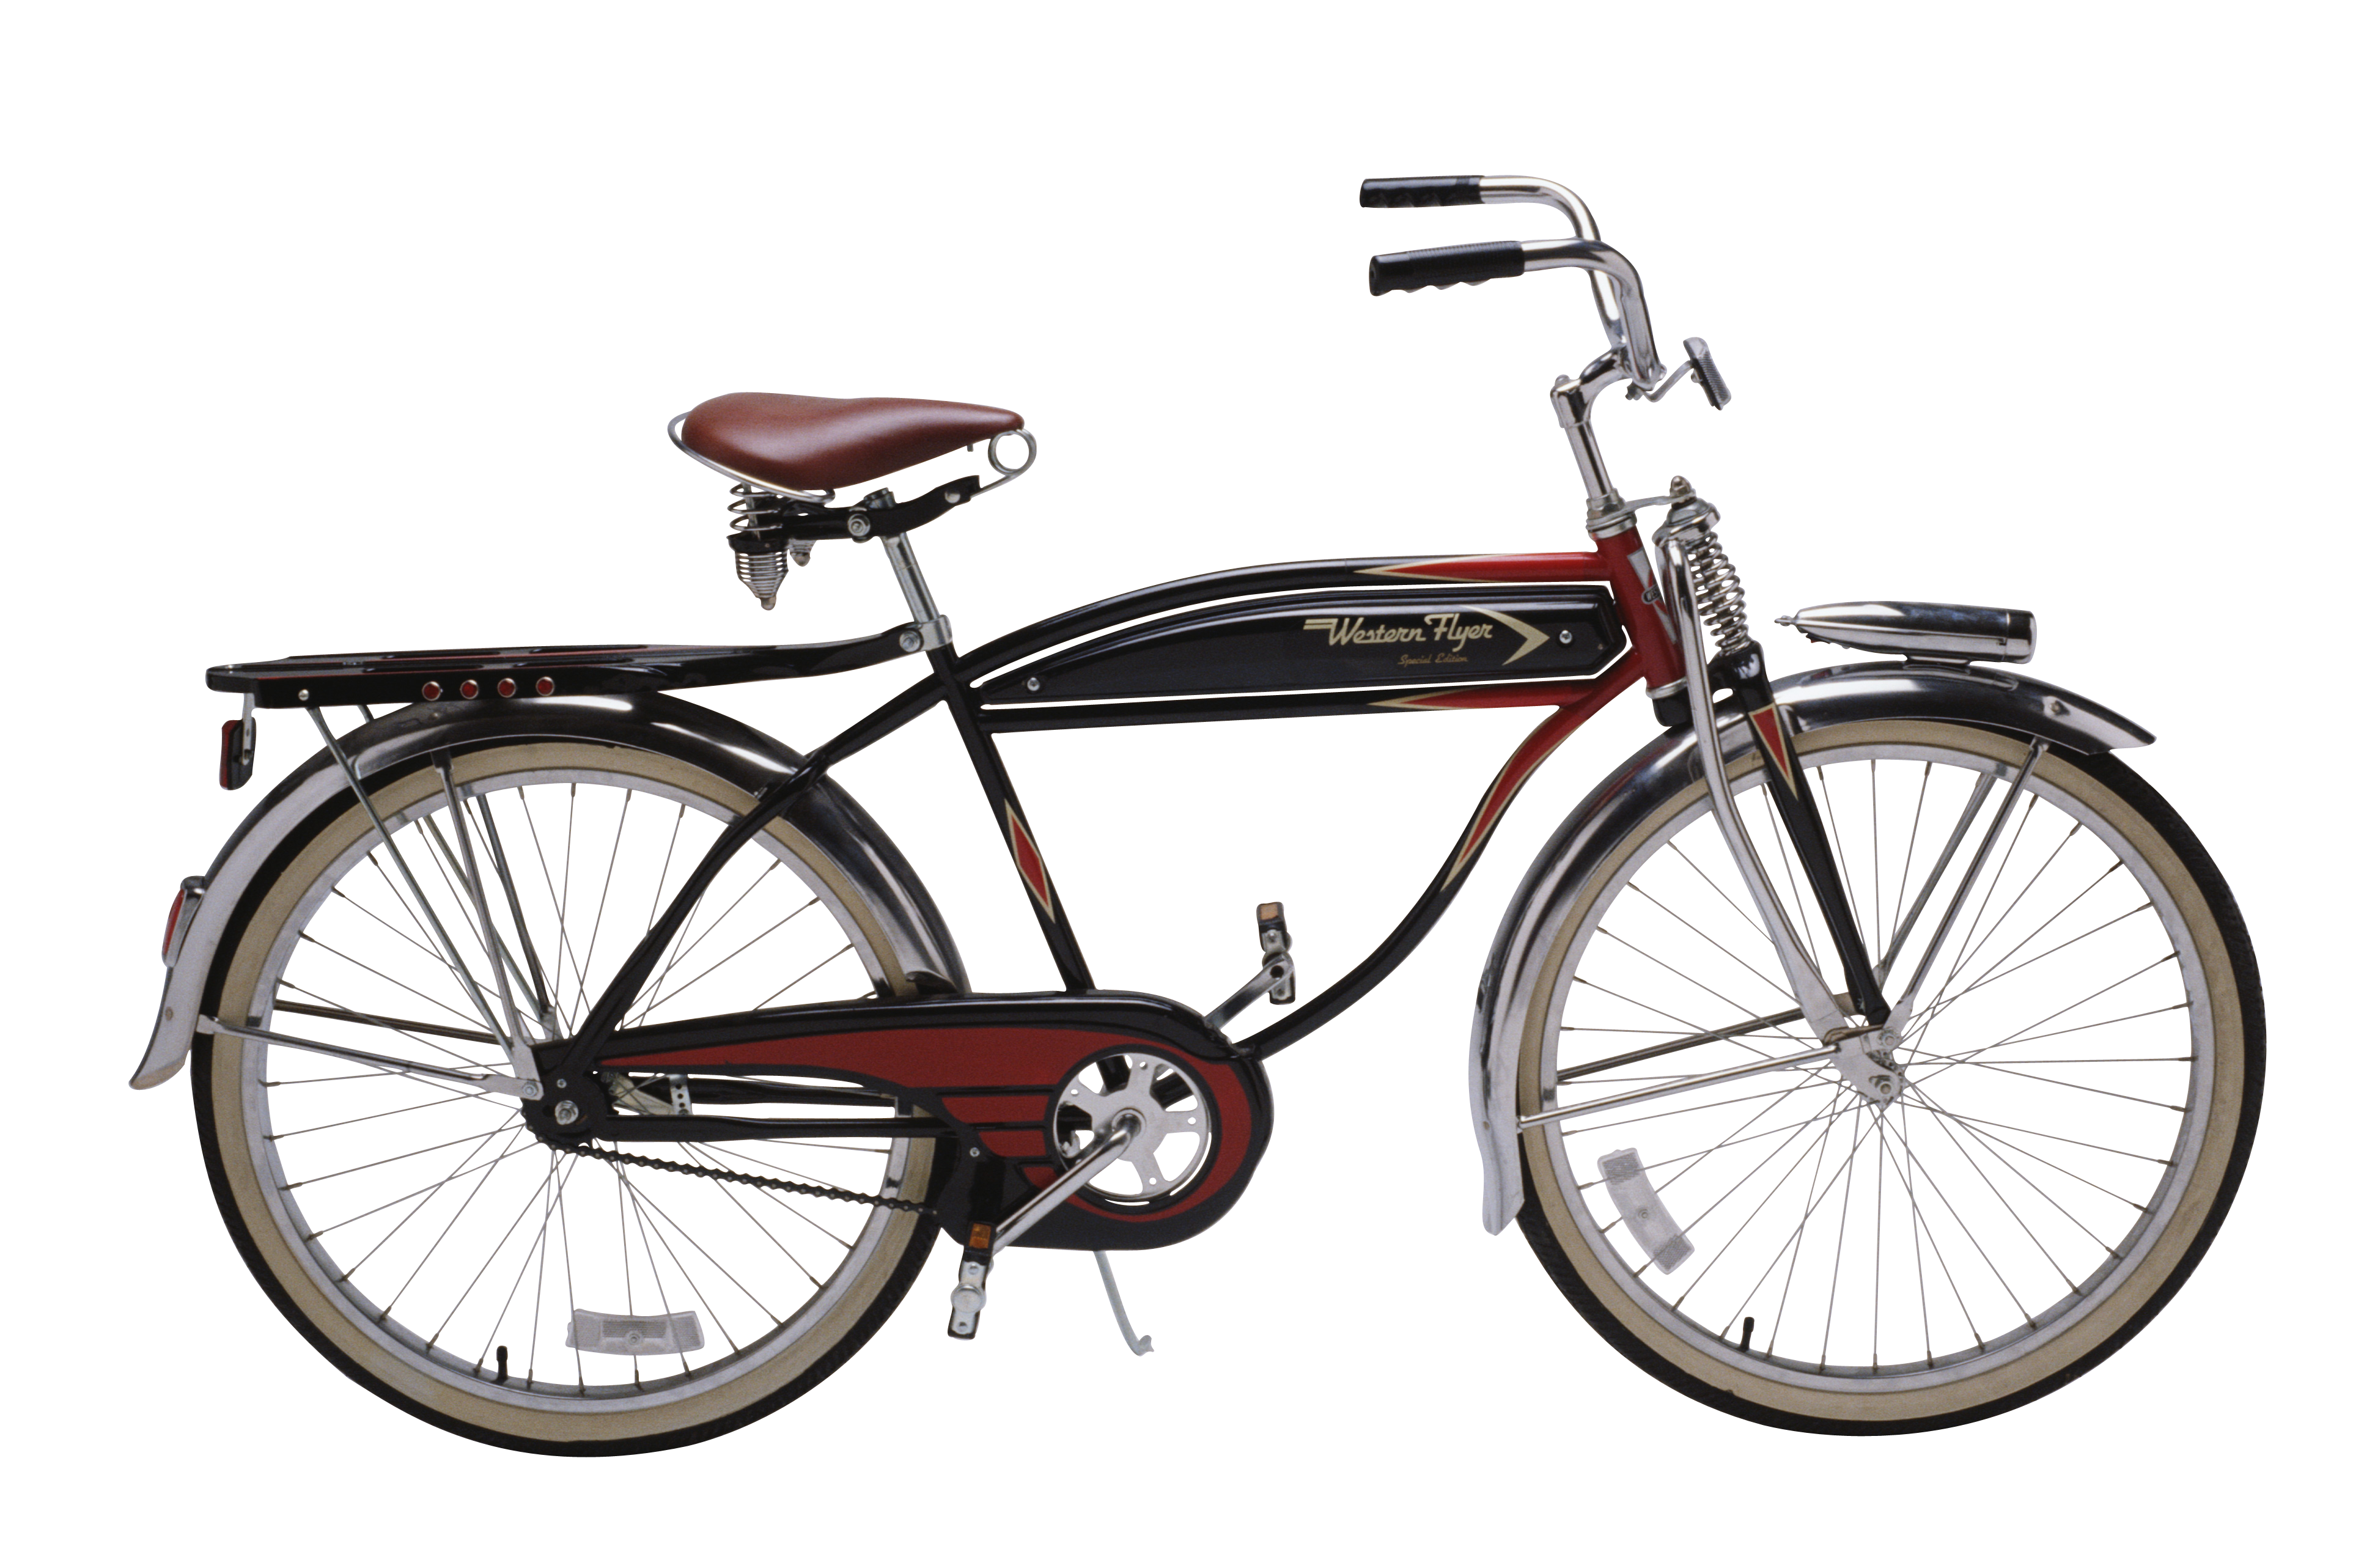 Picture Bicycle PNG Images